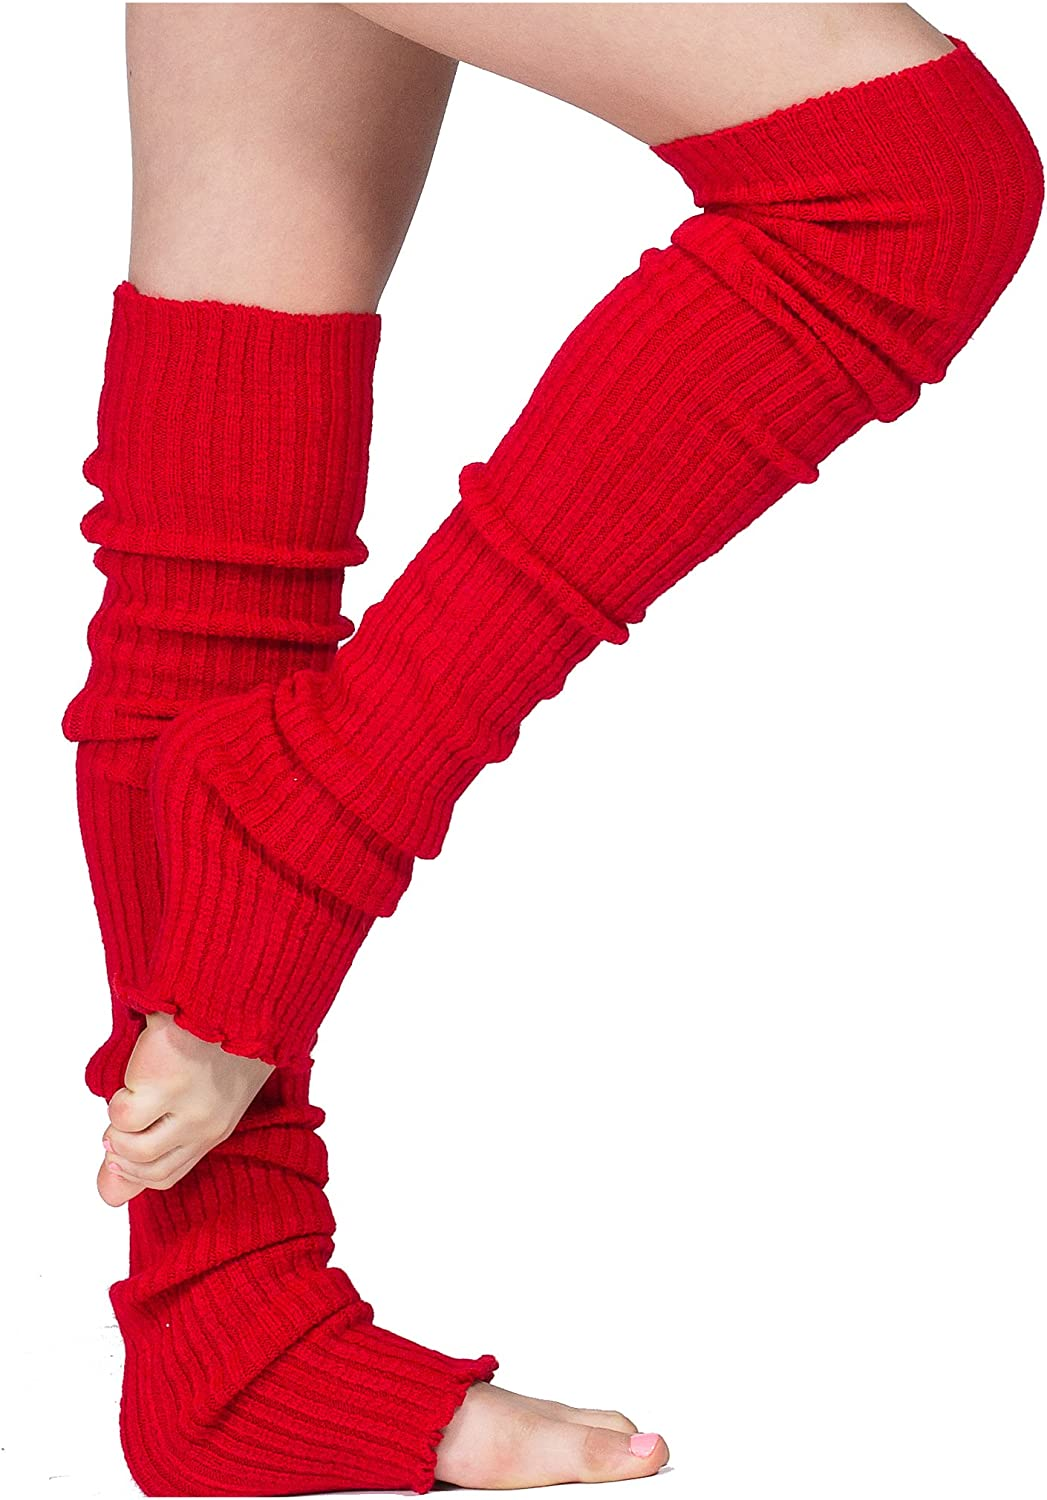 Pro Dancer Thigh High Leg Warmers by KD dance Ribbed Stretch Knit MADE IN USA